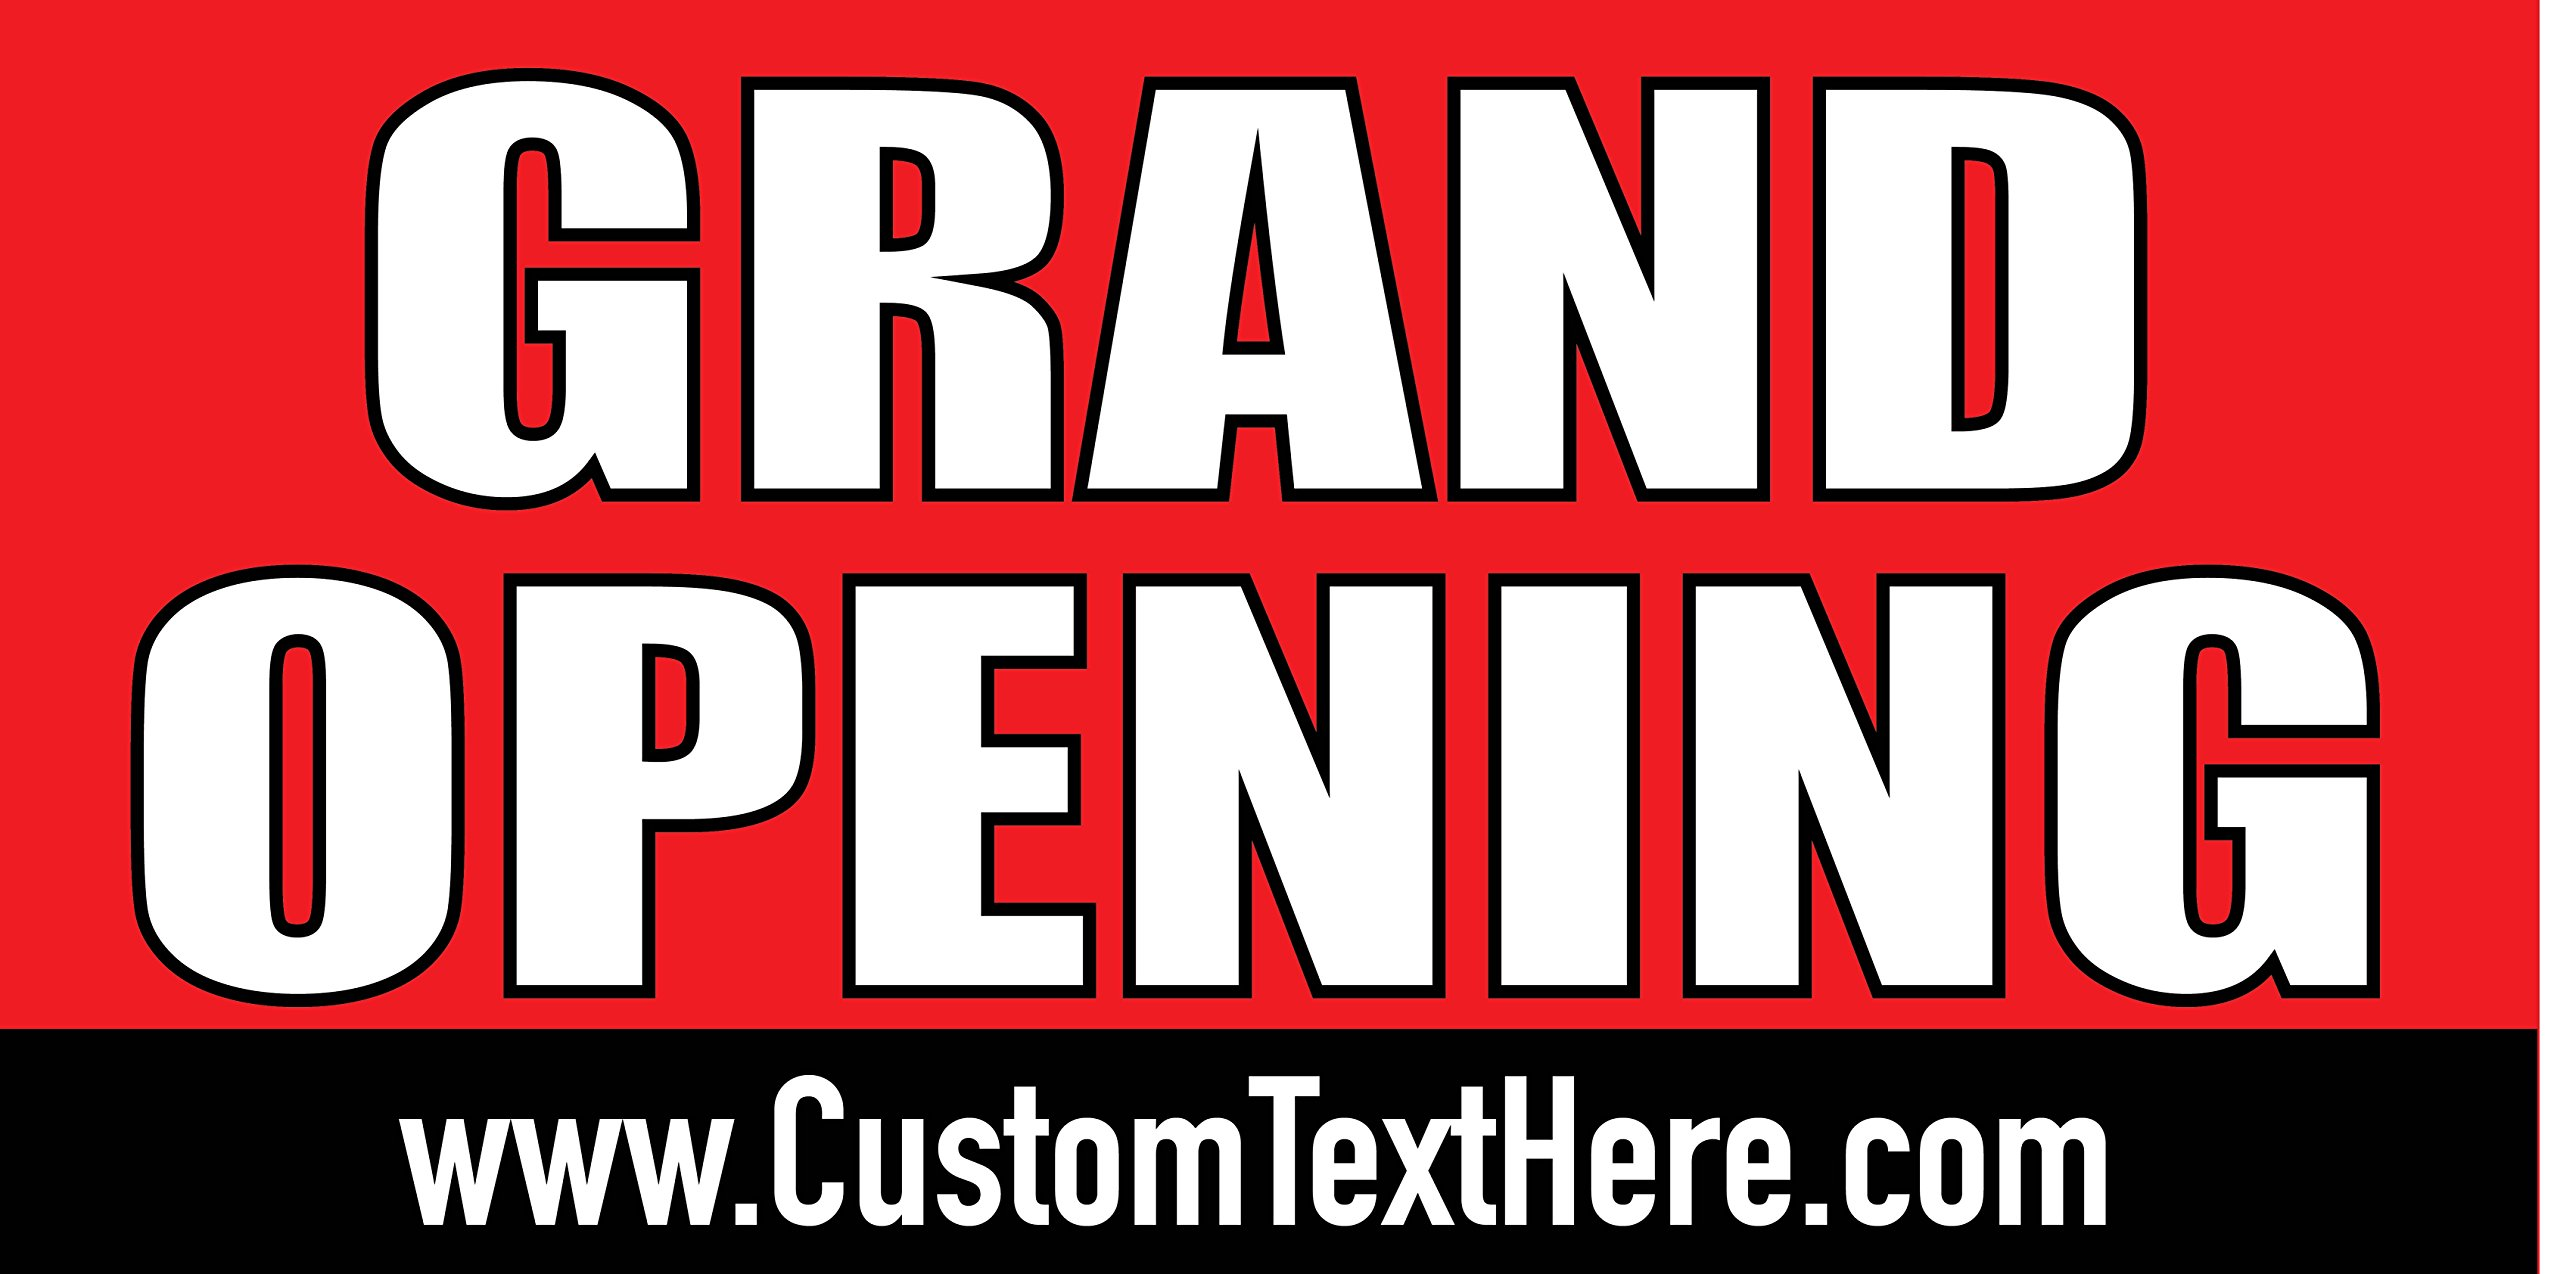 Custom Printed Grand Opening Banner - Red (10' x 5') by Reliable Banner Sign Supply & Printing